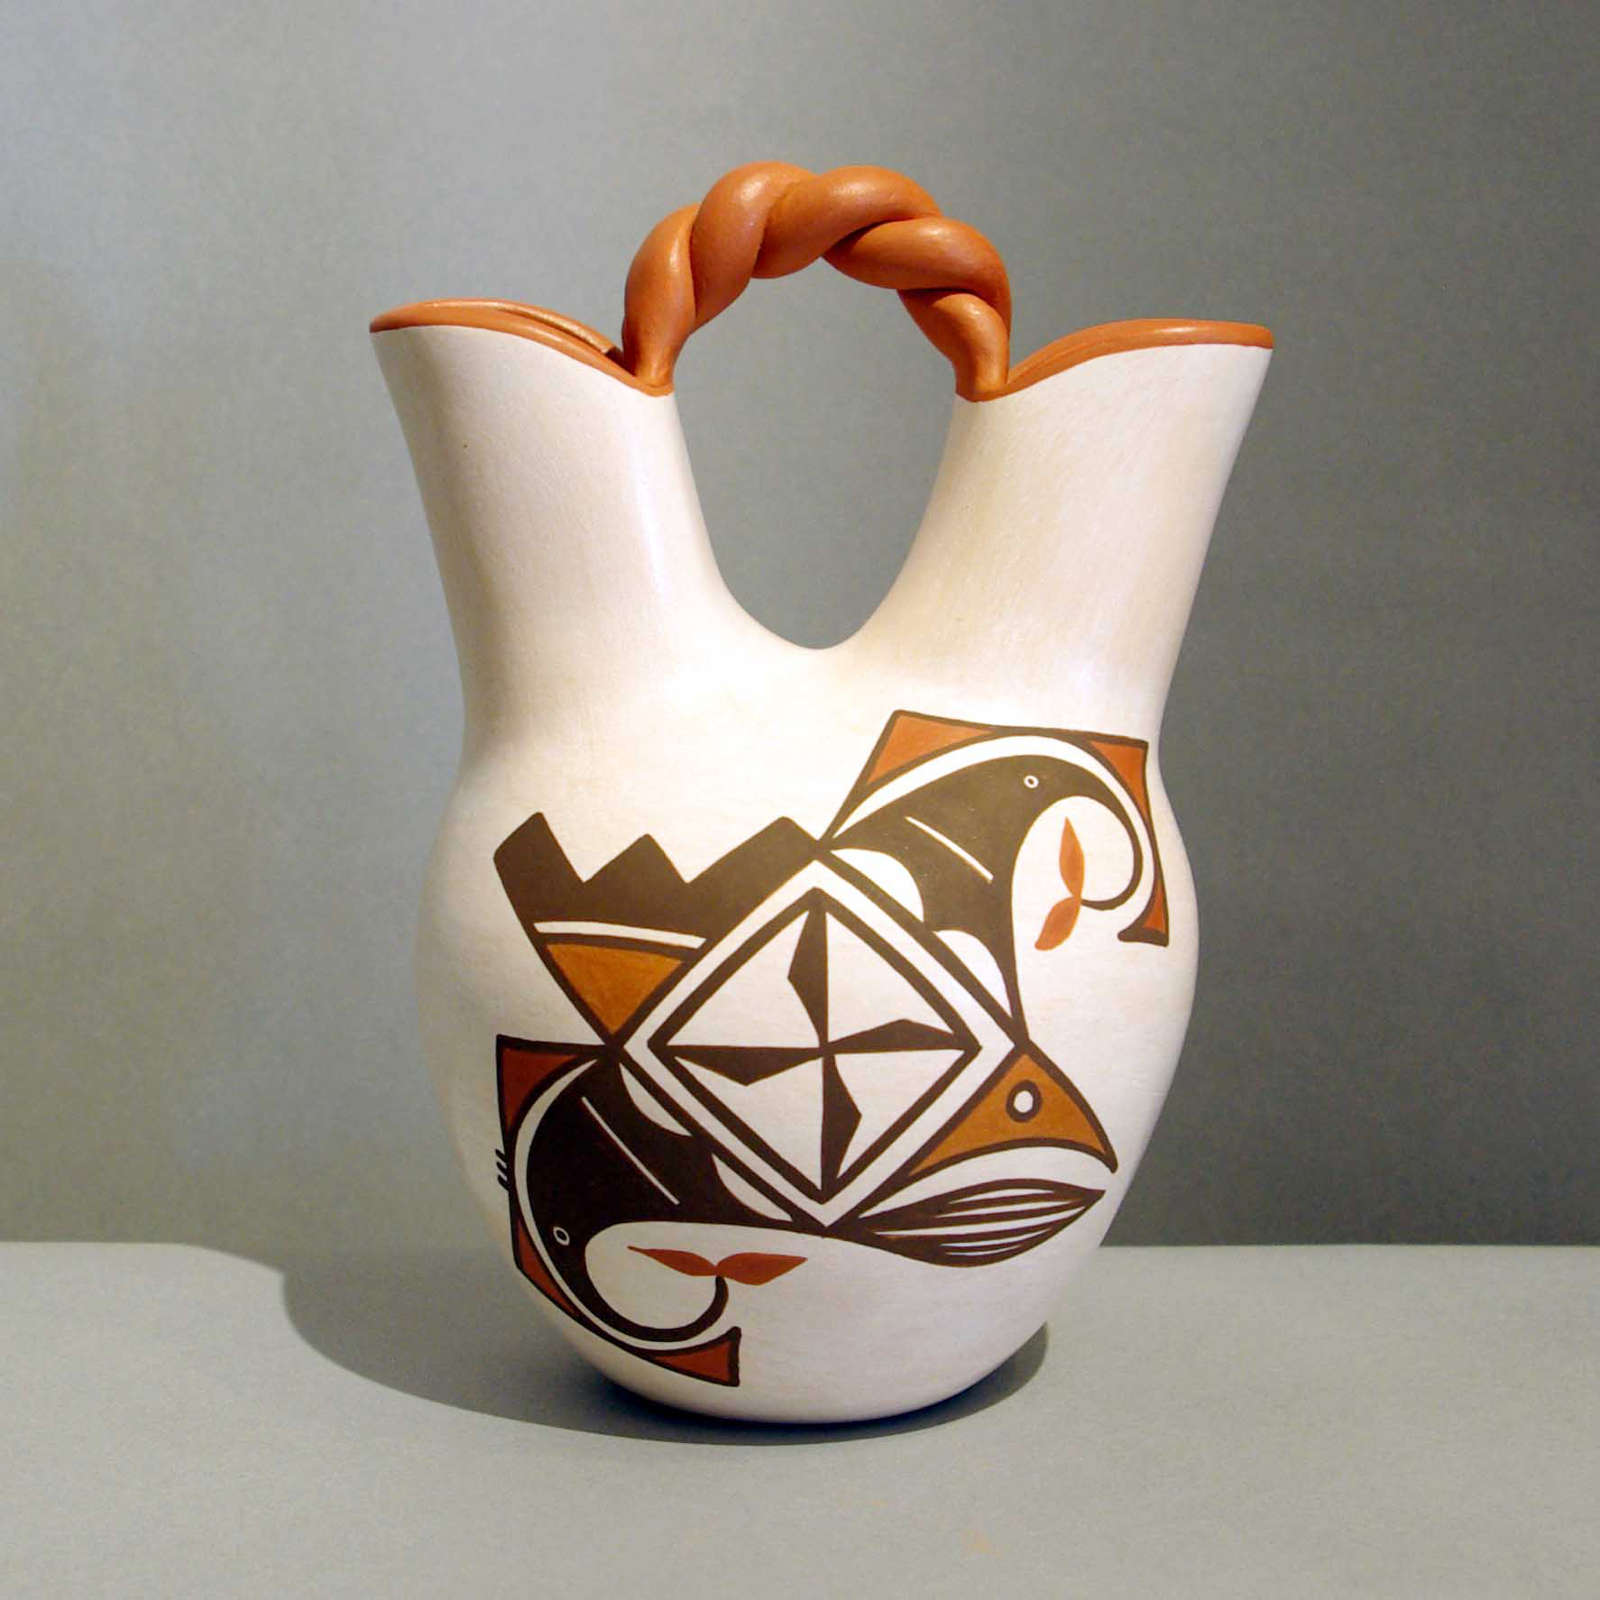 Gladys paquin laguna pueblo potters bird element medallion and geometric design on a polychrome wedding vase with a twisted handle reviewsmspy